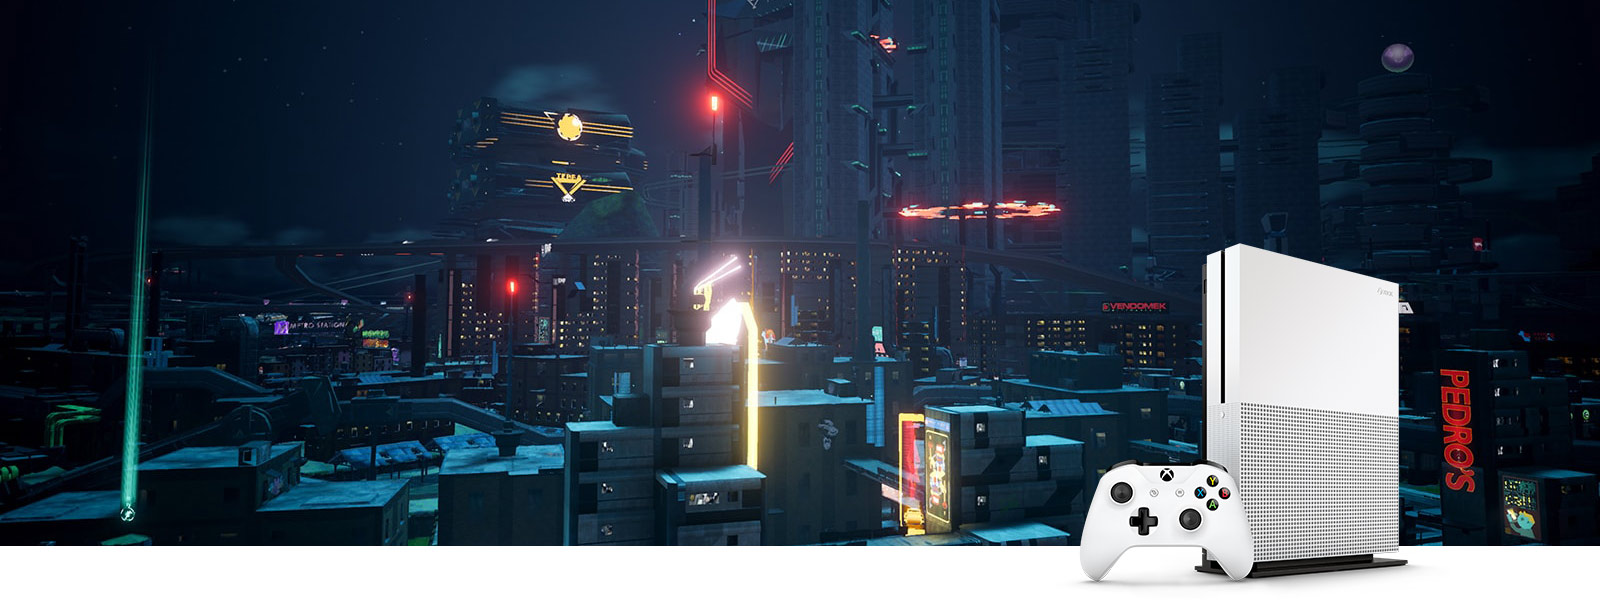 Crackdown 3 screenshot without high dynamic range (HDR)